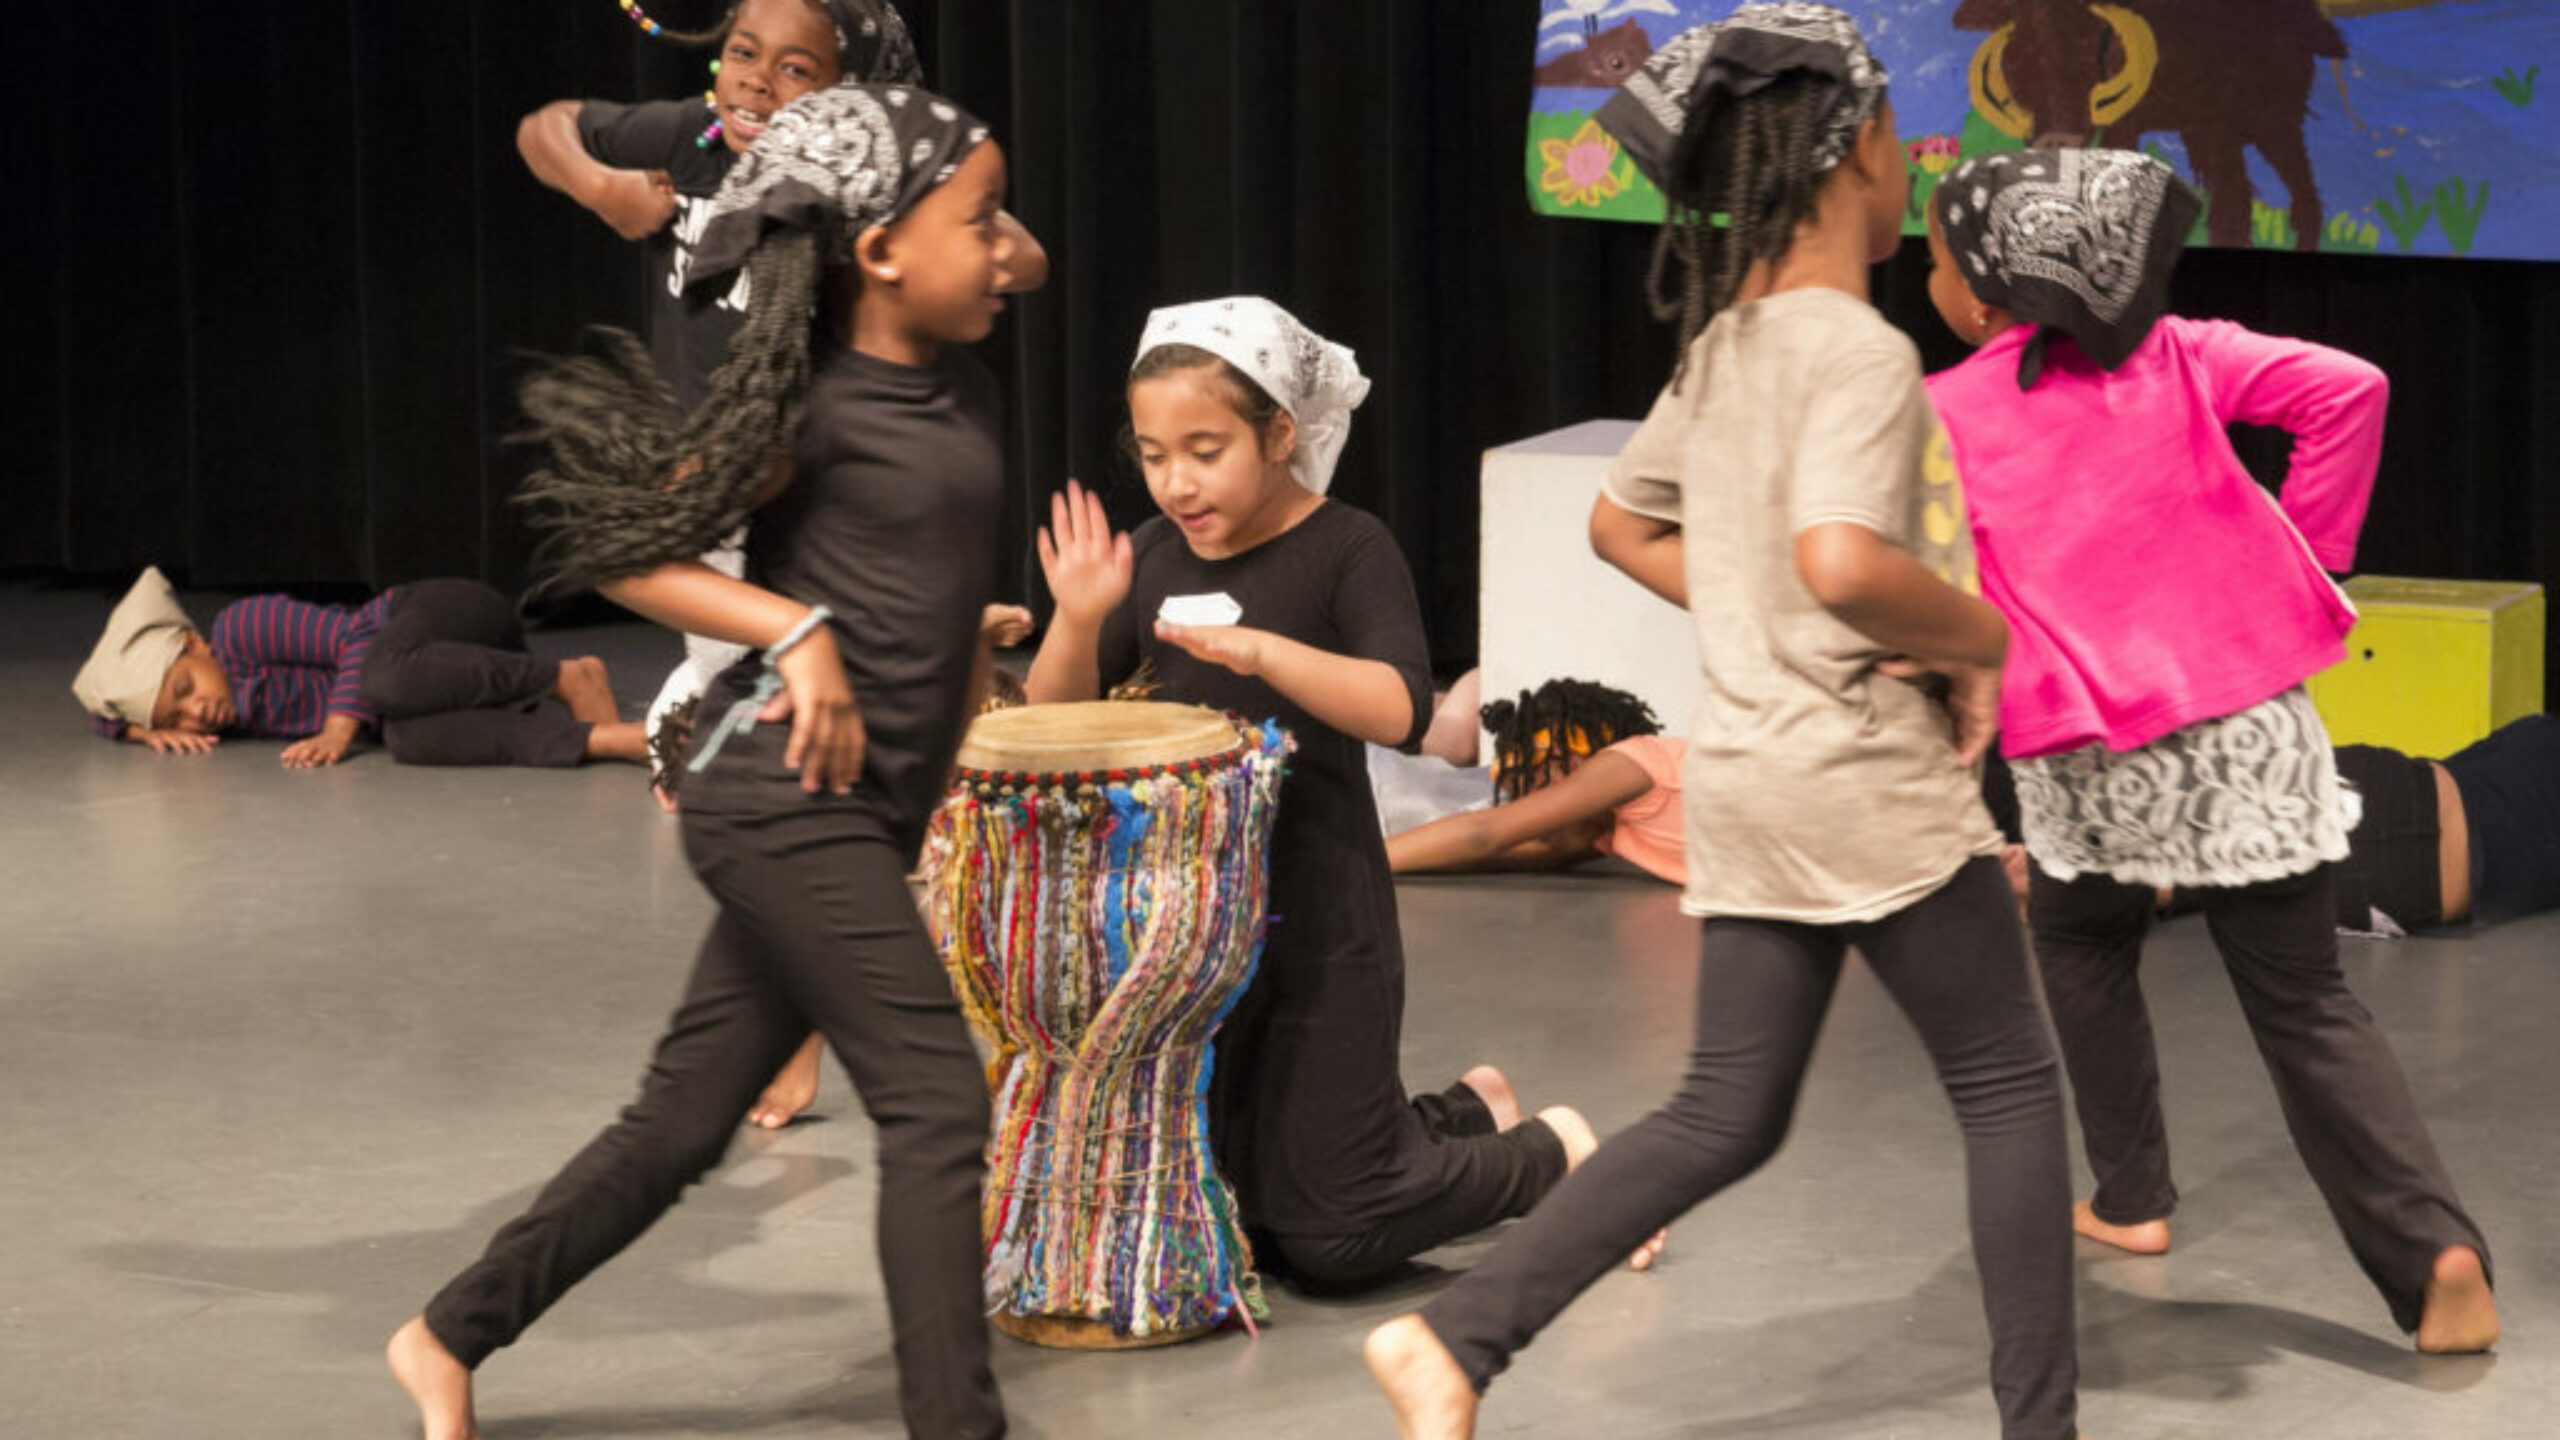 One child hits a drum on stage as four other children dance around her. They all swear head scarves